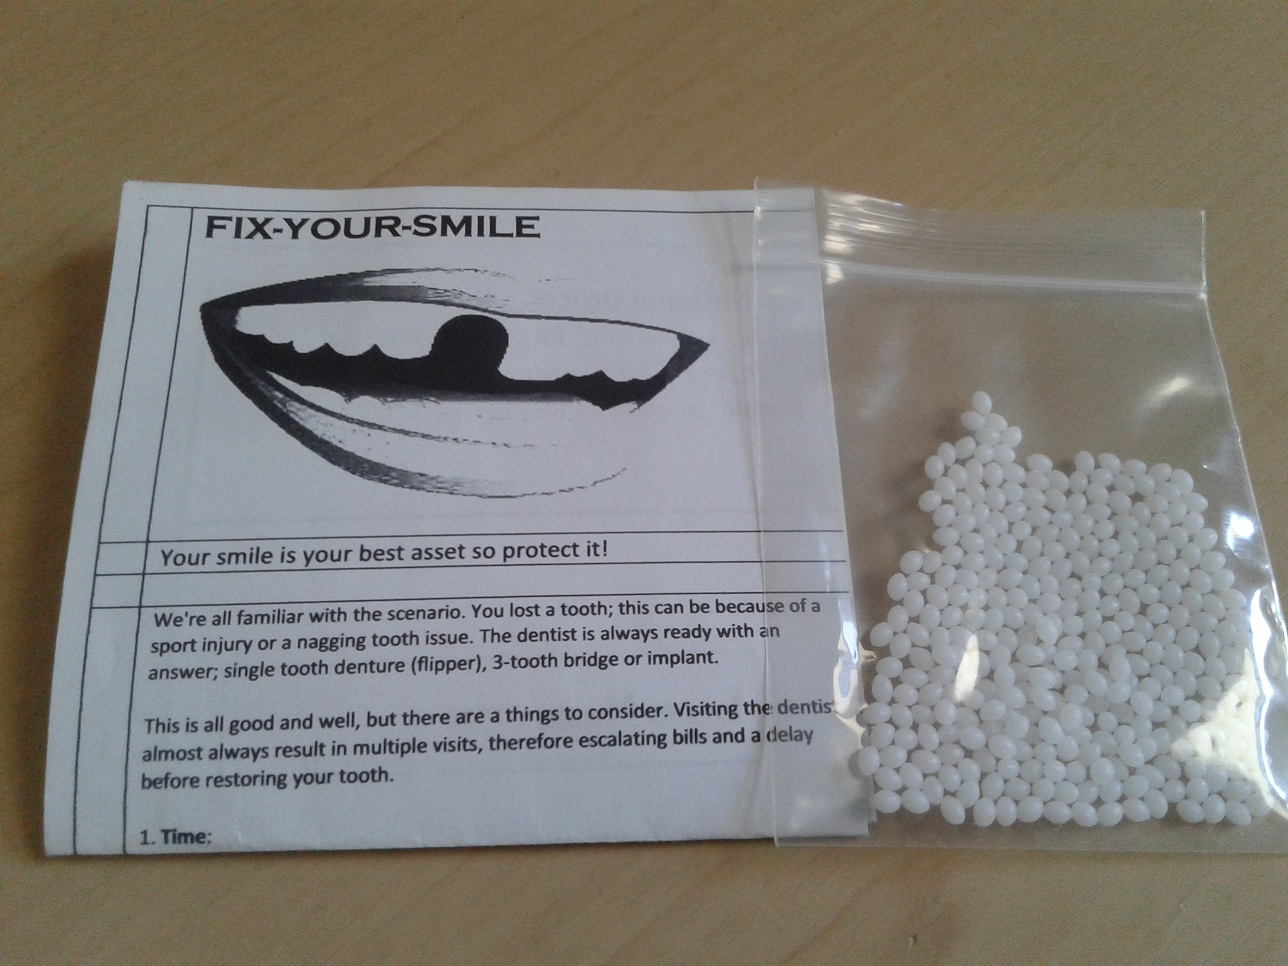 FIX YOUR SMILE